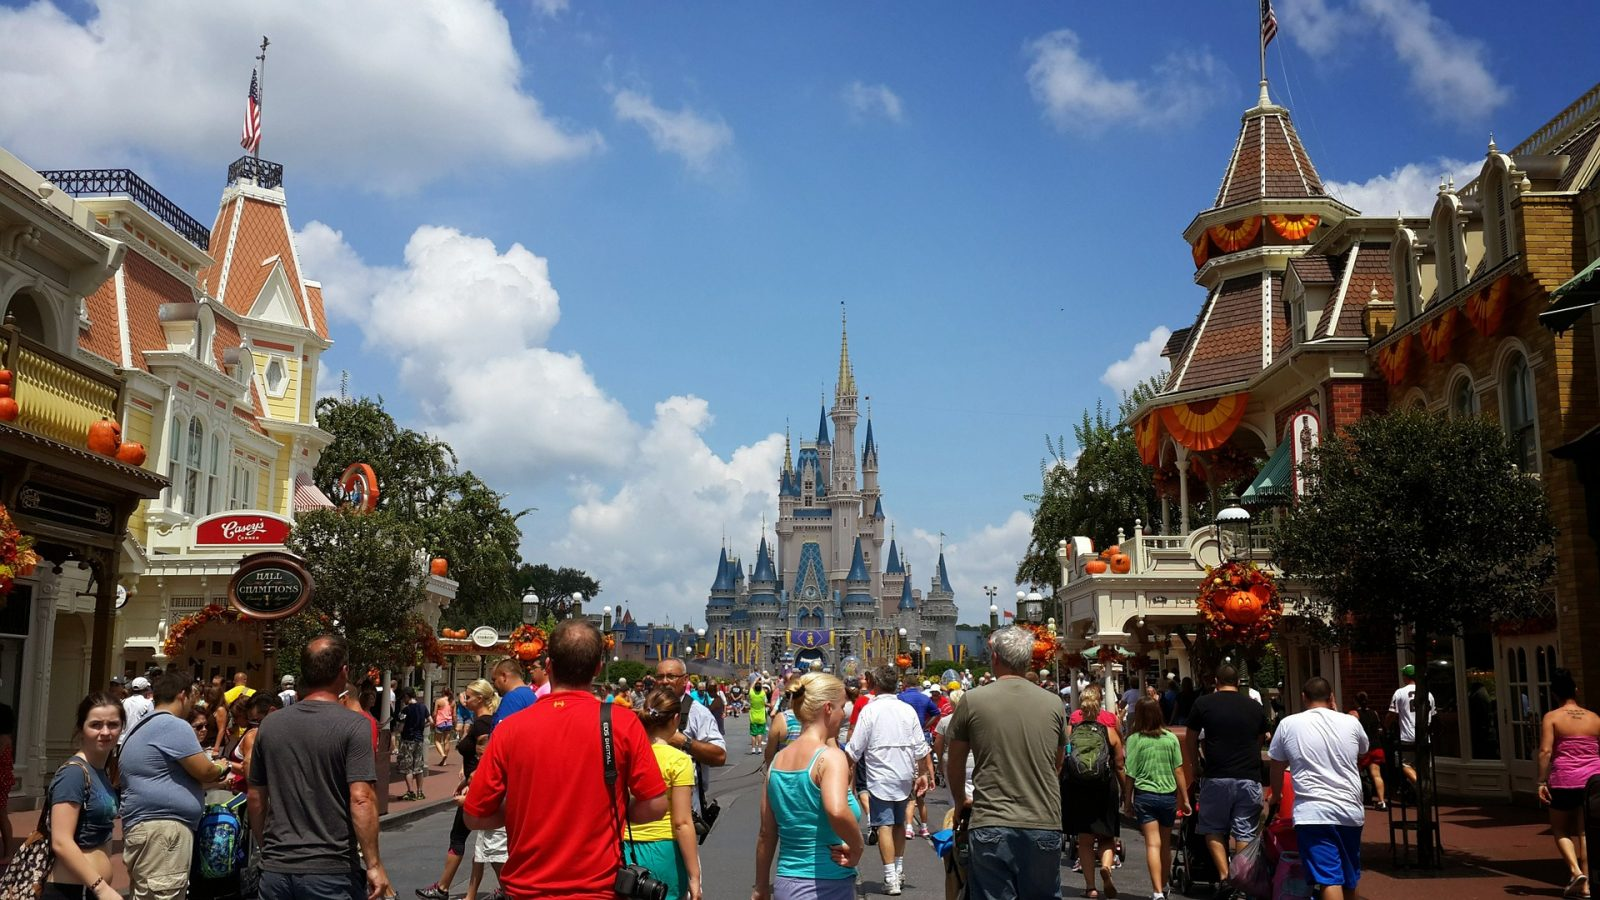 What to do in Orlando: The Magic Kingdom at Disney World